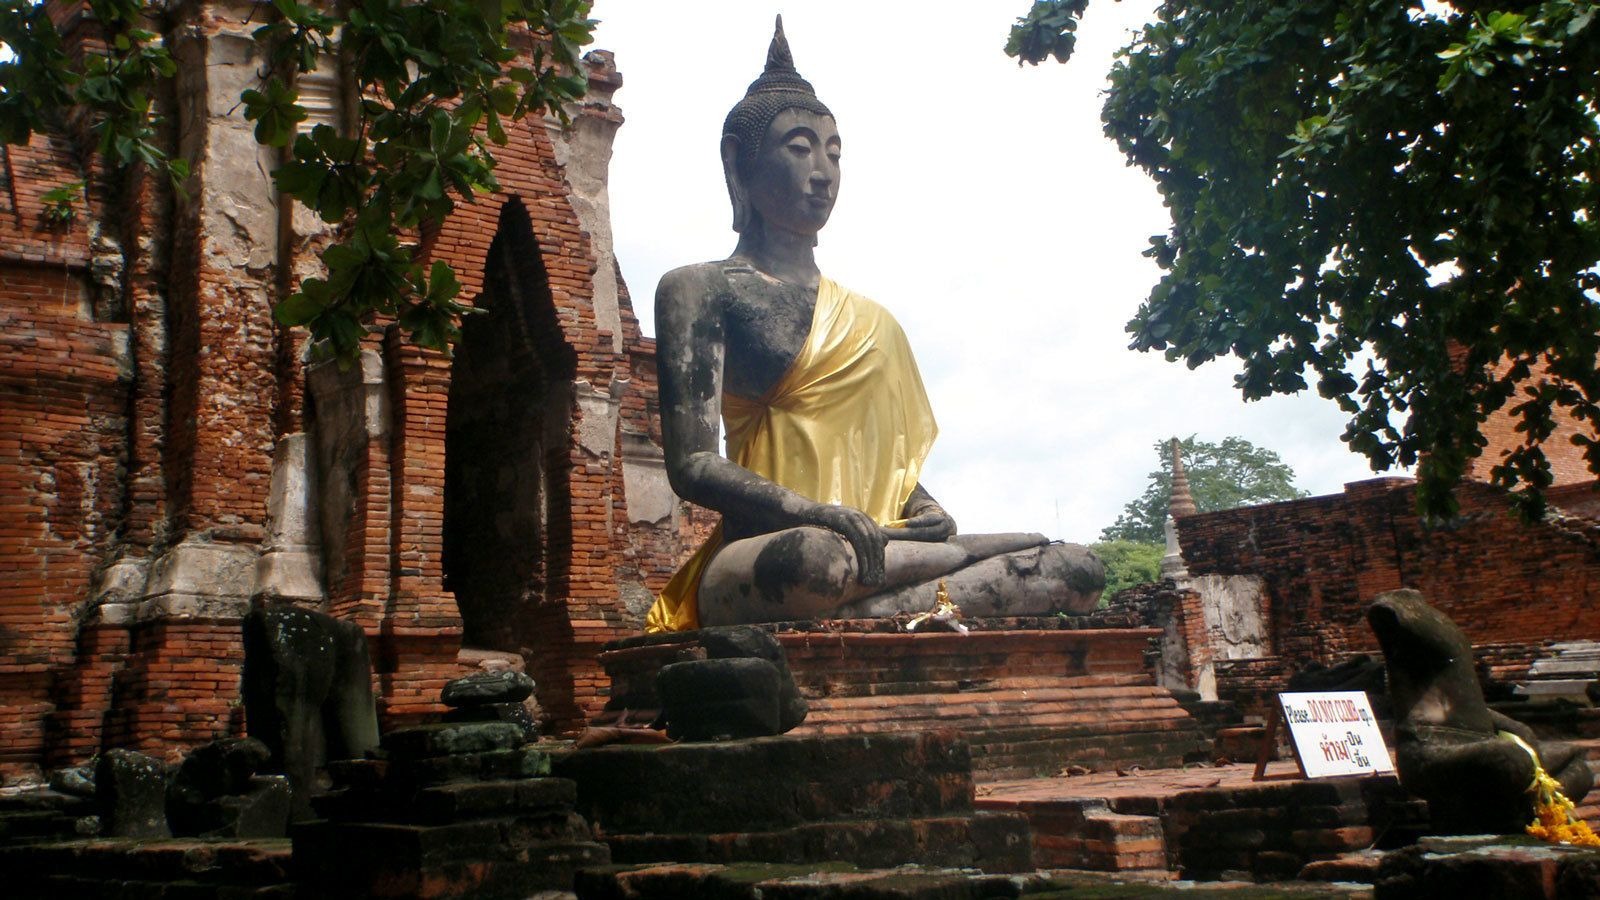 large Buddha statue at a brick temple in Thailand